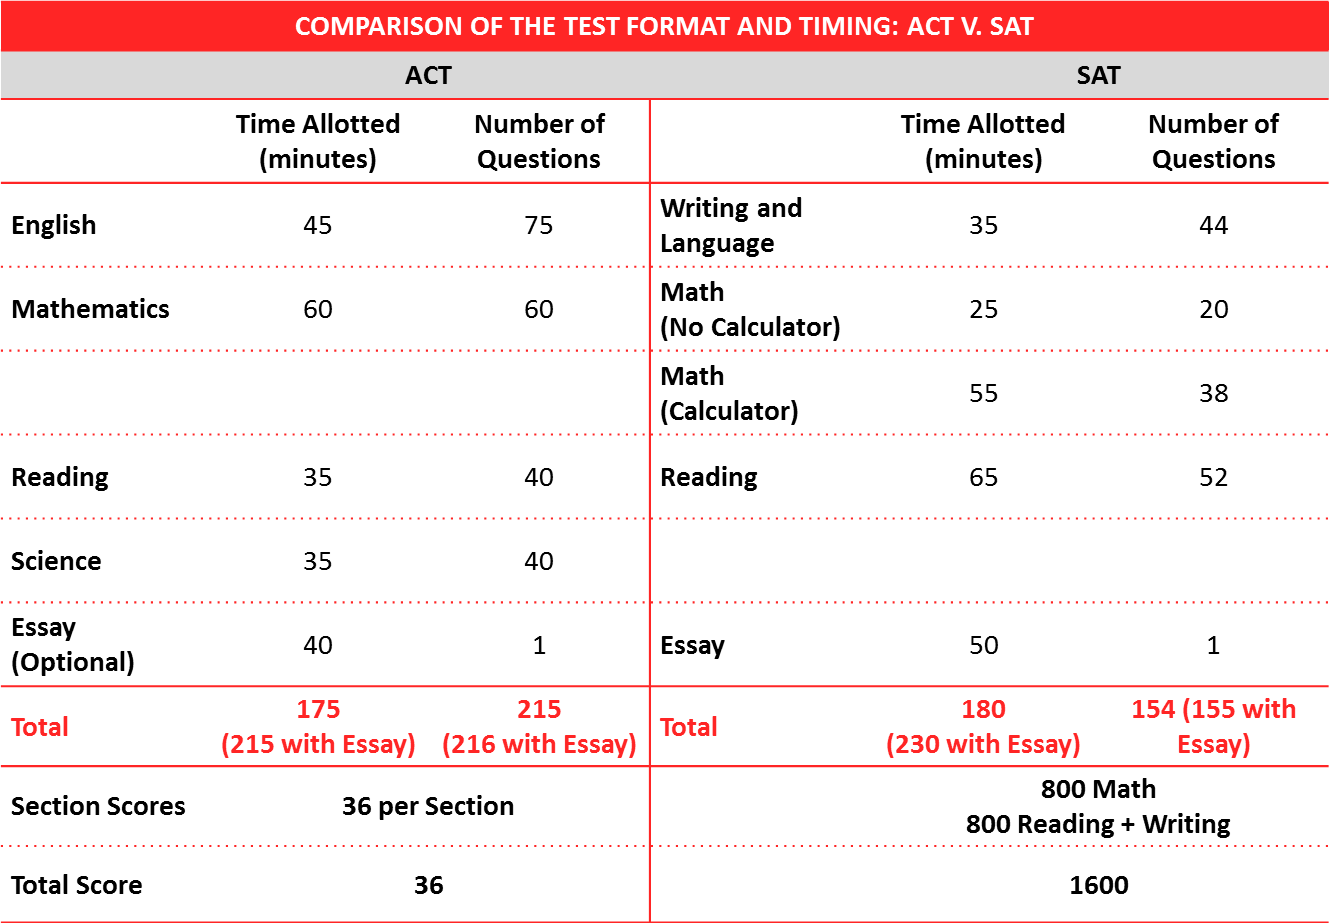 Comparison of ACT and SAT Formats